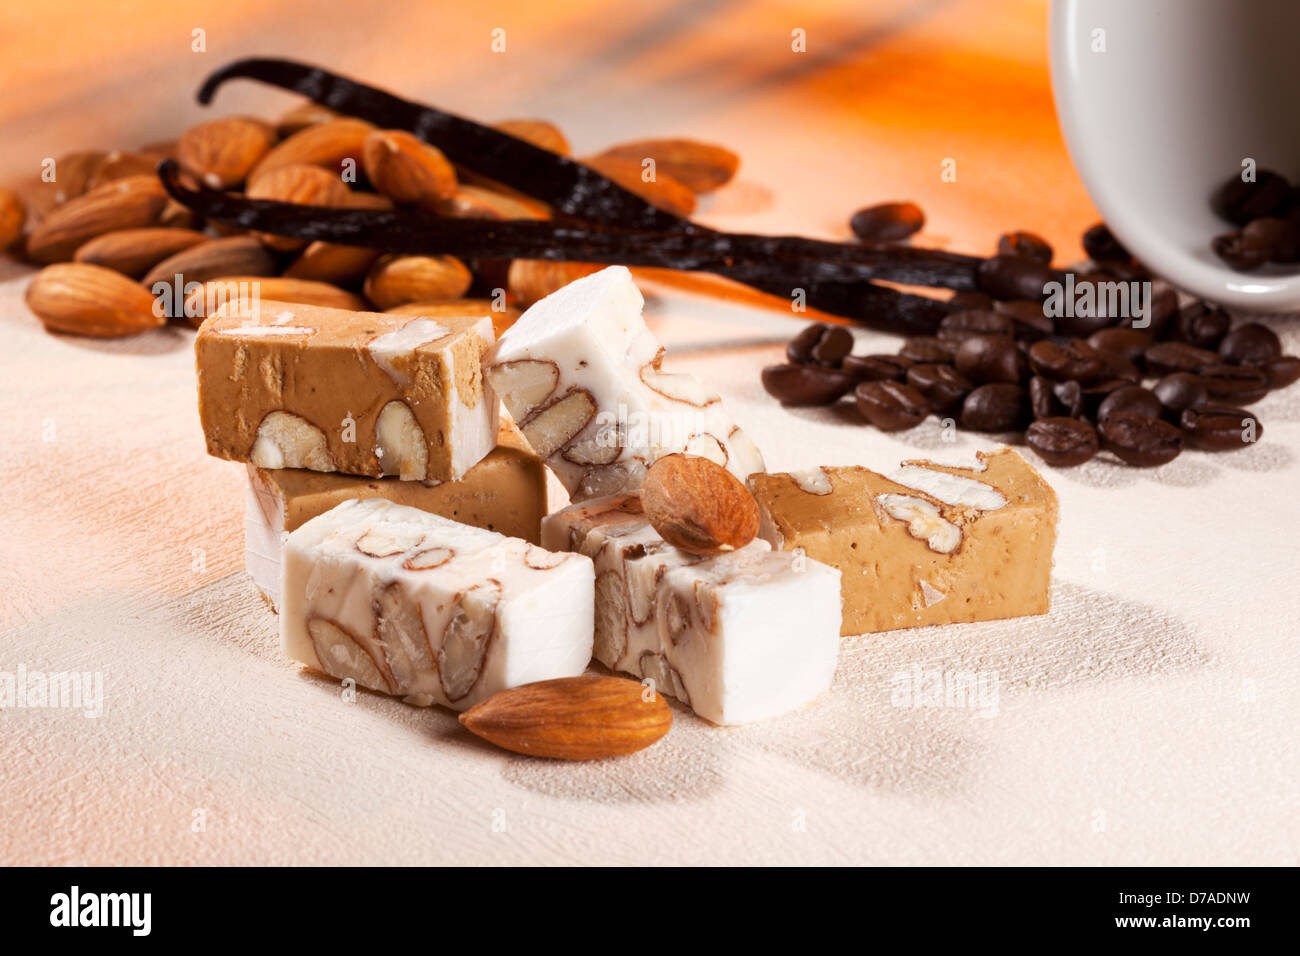 Fine nougat from Belgium flavored with coffee and vanilla surrounded with its ingredients - Stock Image